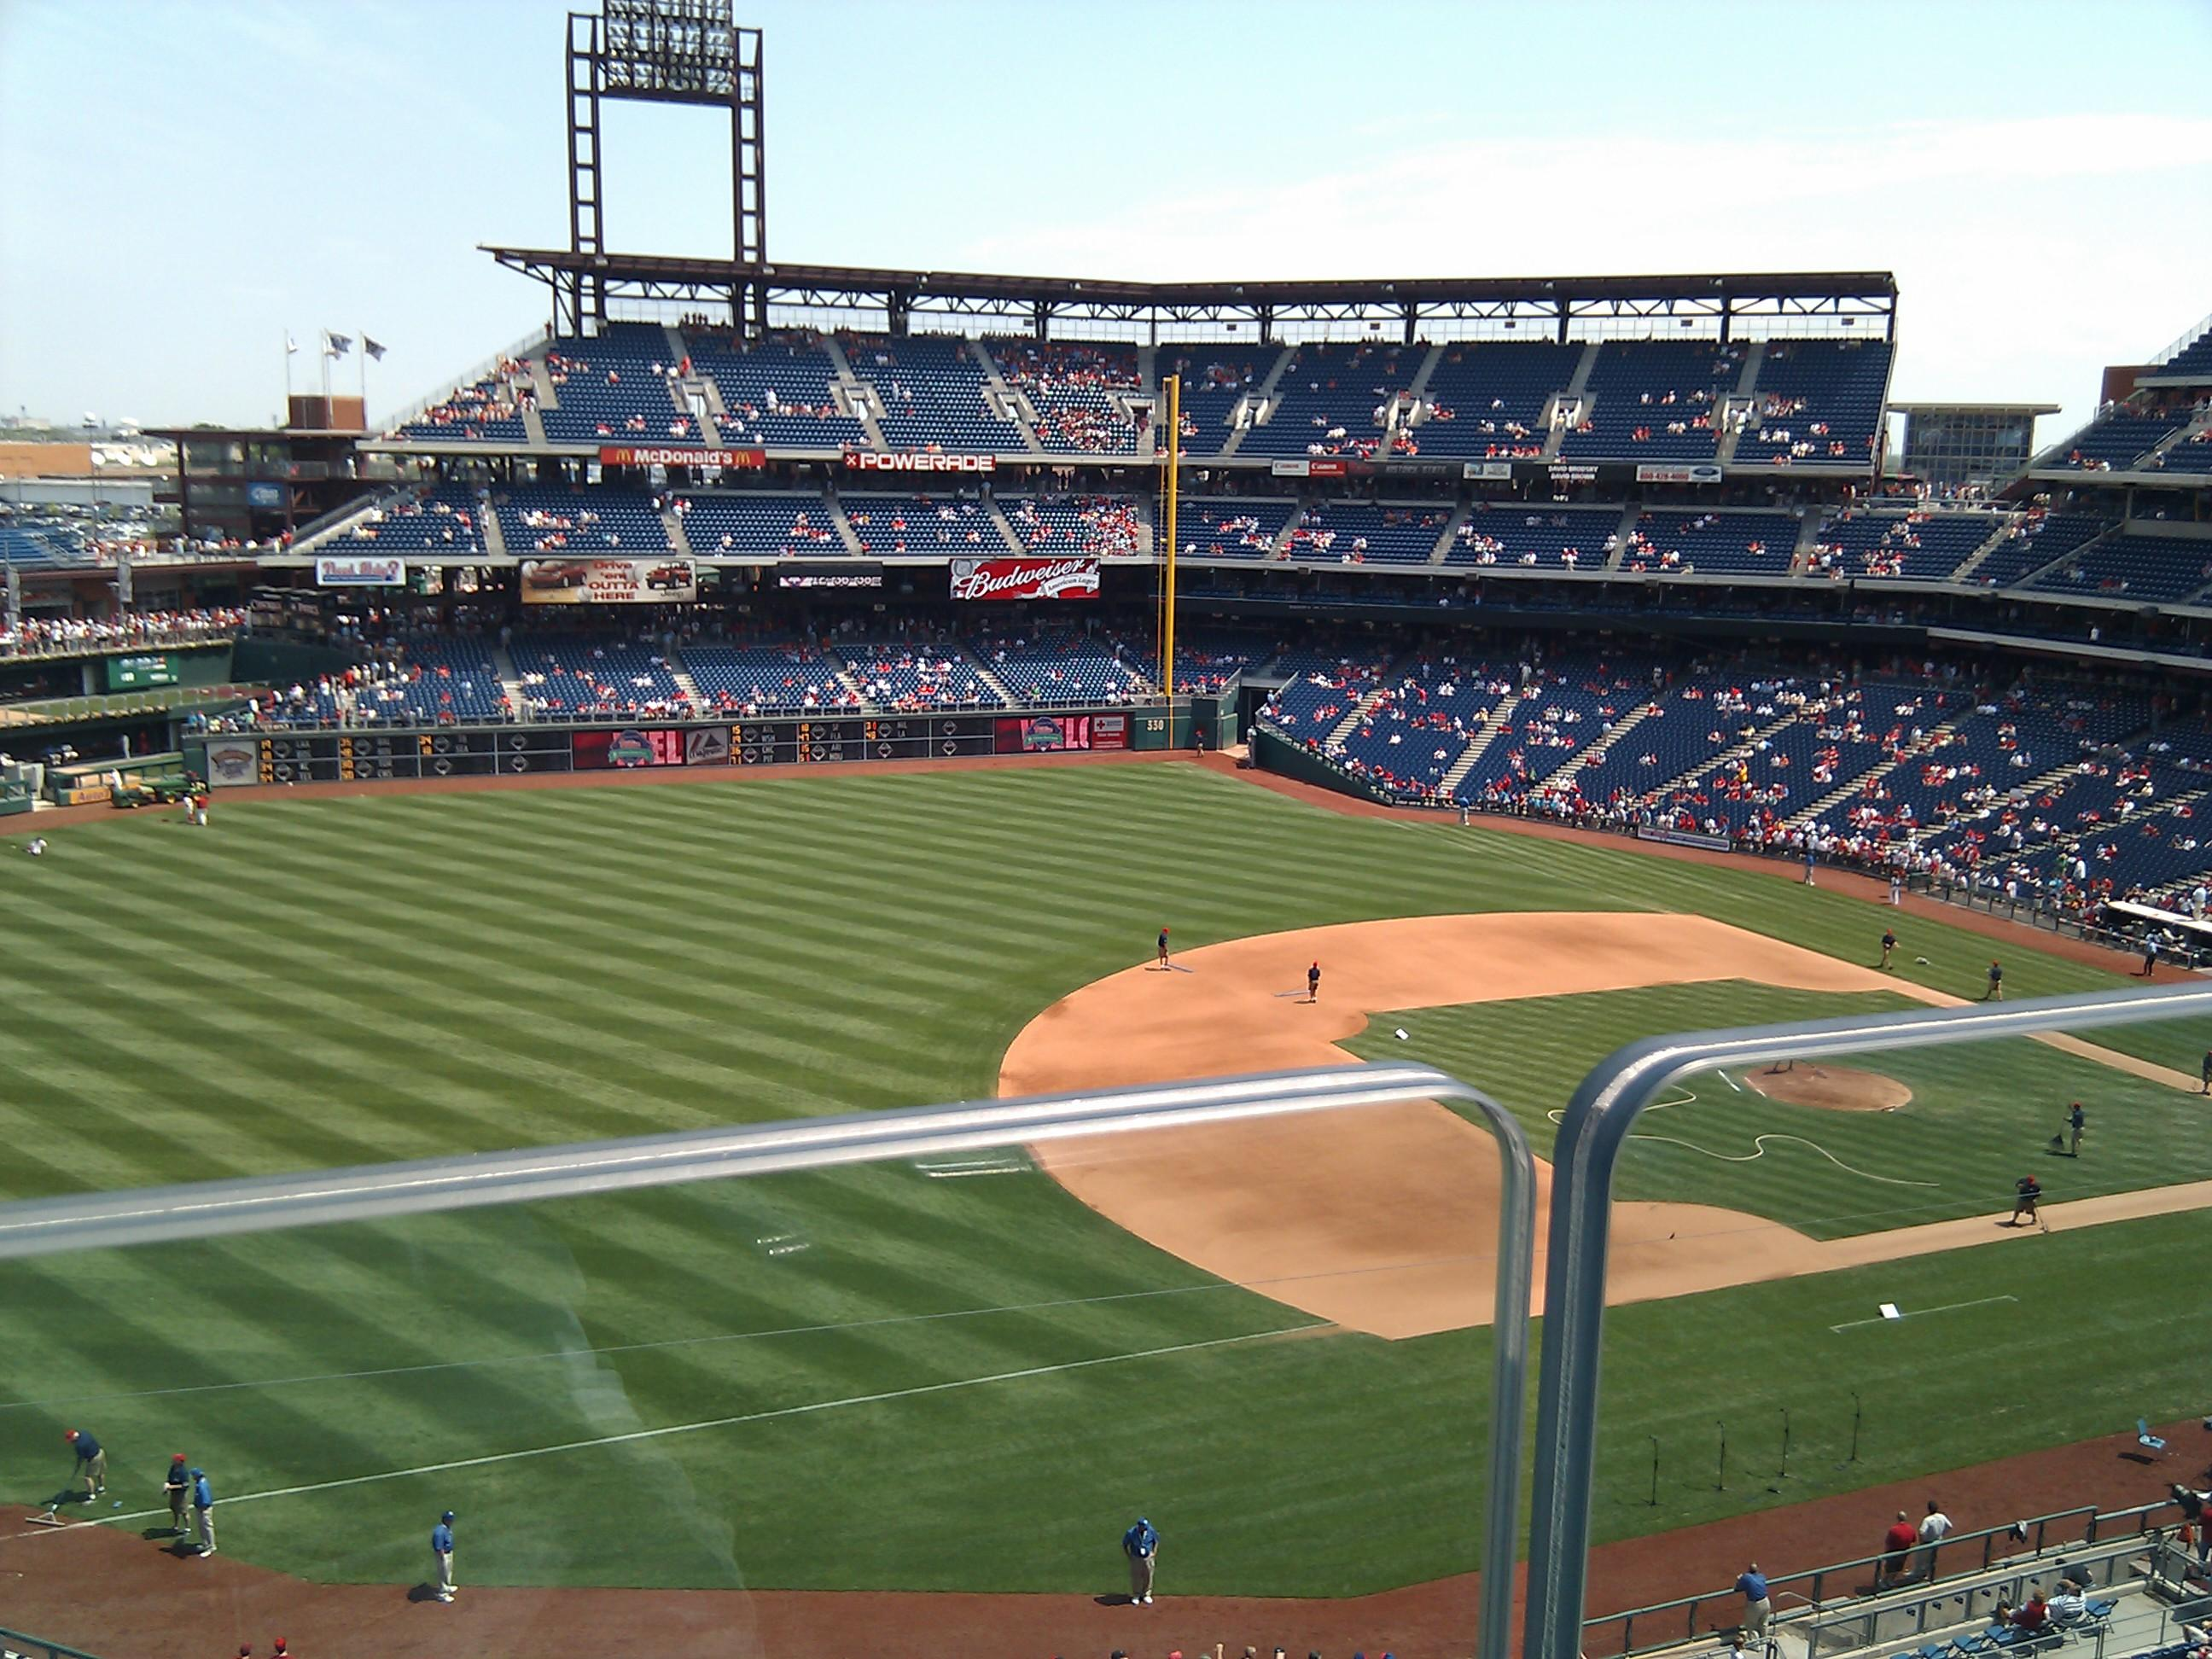 Citizens Bank Park Section 320 Row 1 Seat 16